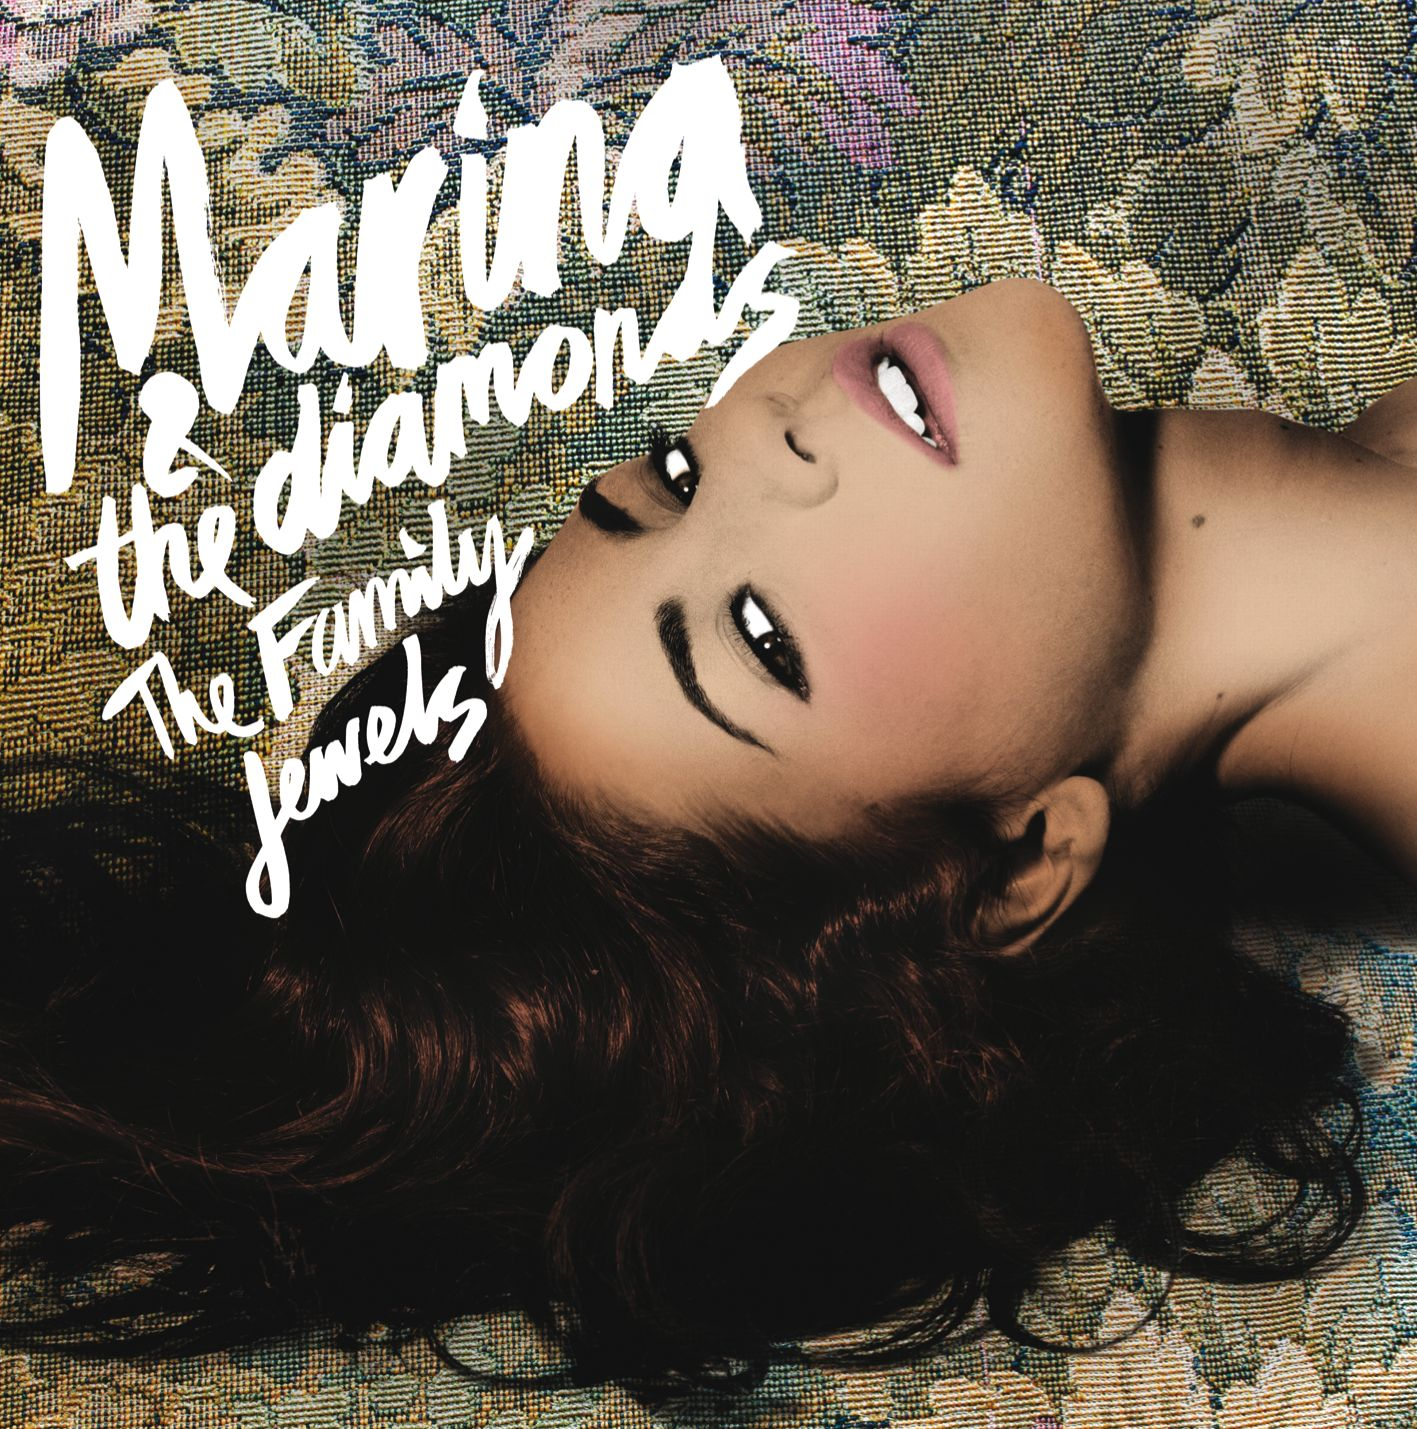 http://3.bp.blogspot.com/_9t7NcMzAq2U/TPkULhRJxOI/AAAAAAAAAIY/w2MwqKCloXw/s1600/Marina-The-Diamonds-The-Family-Jewels.jpg